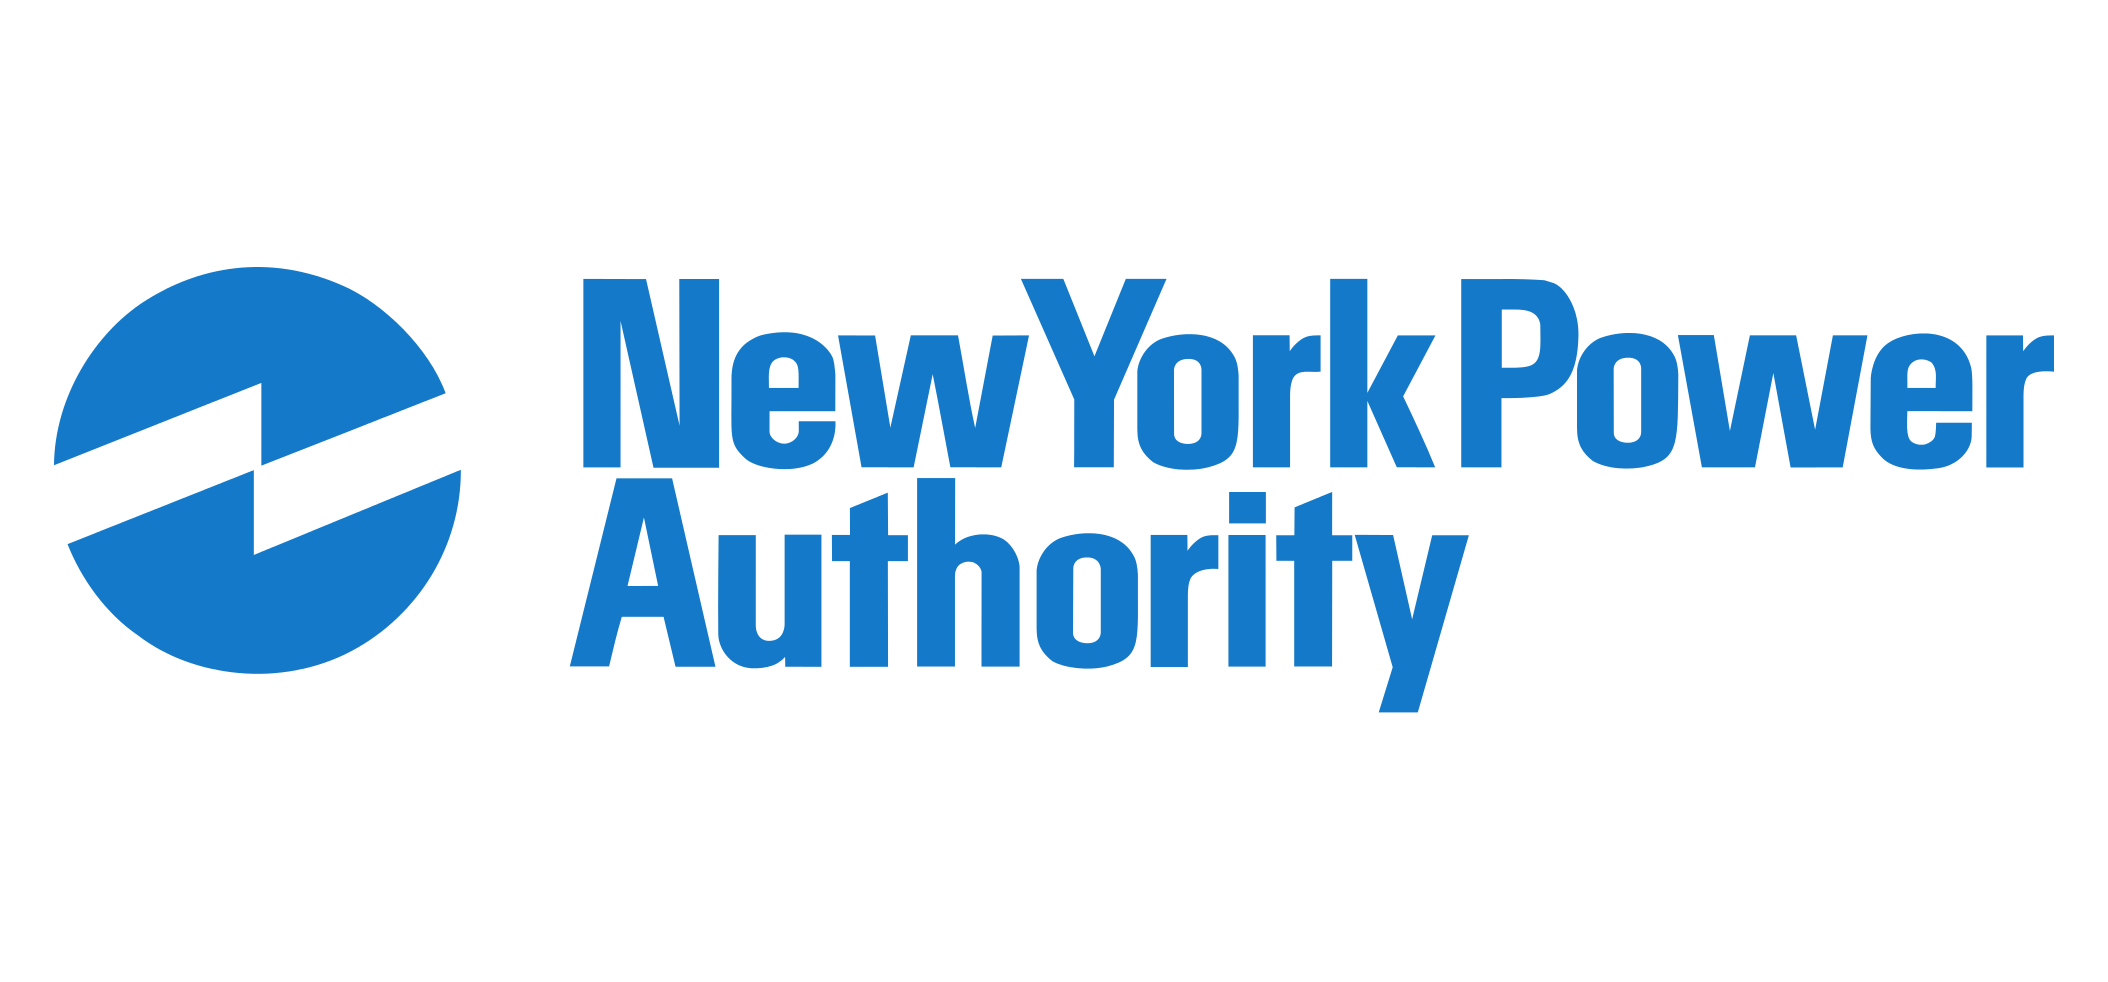 New-York-Power-Authority-logo-color.png